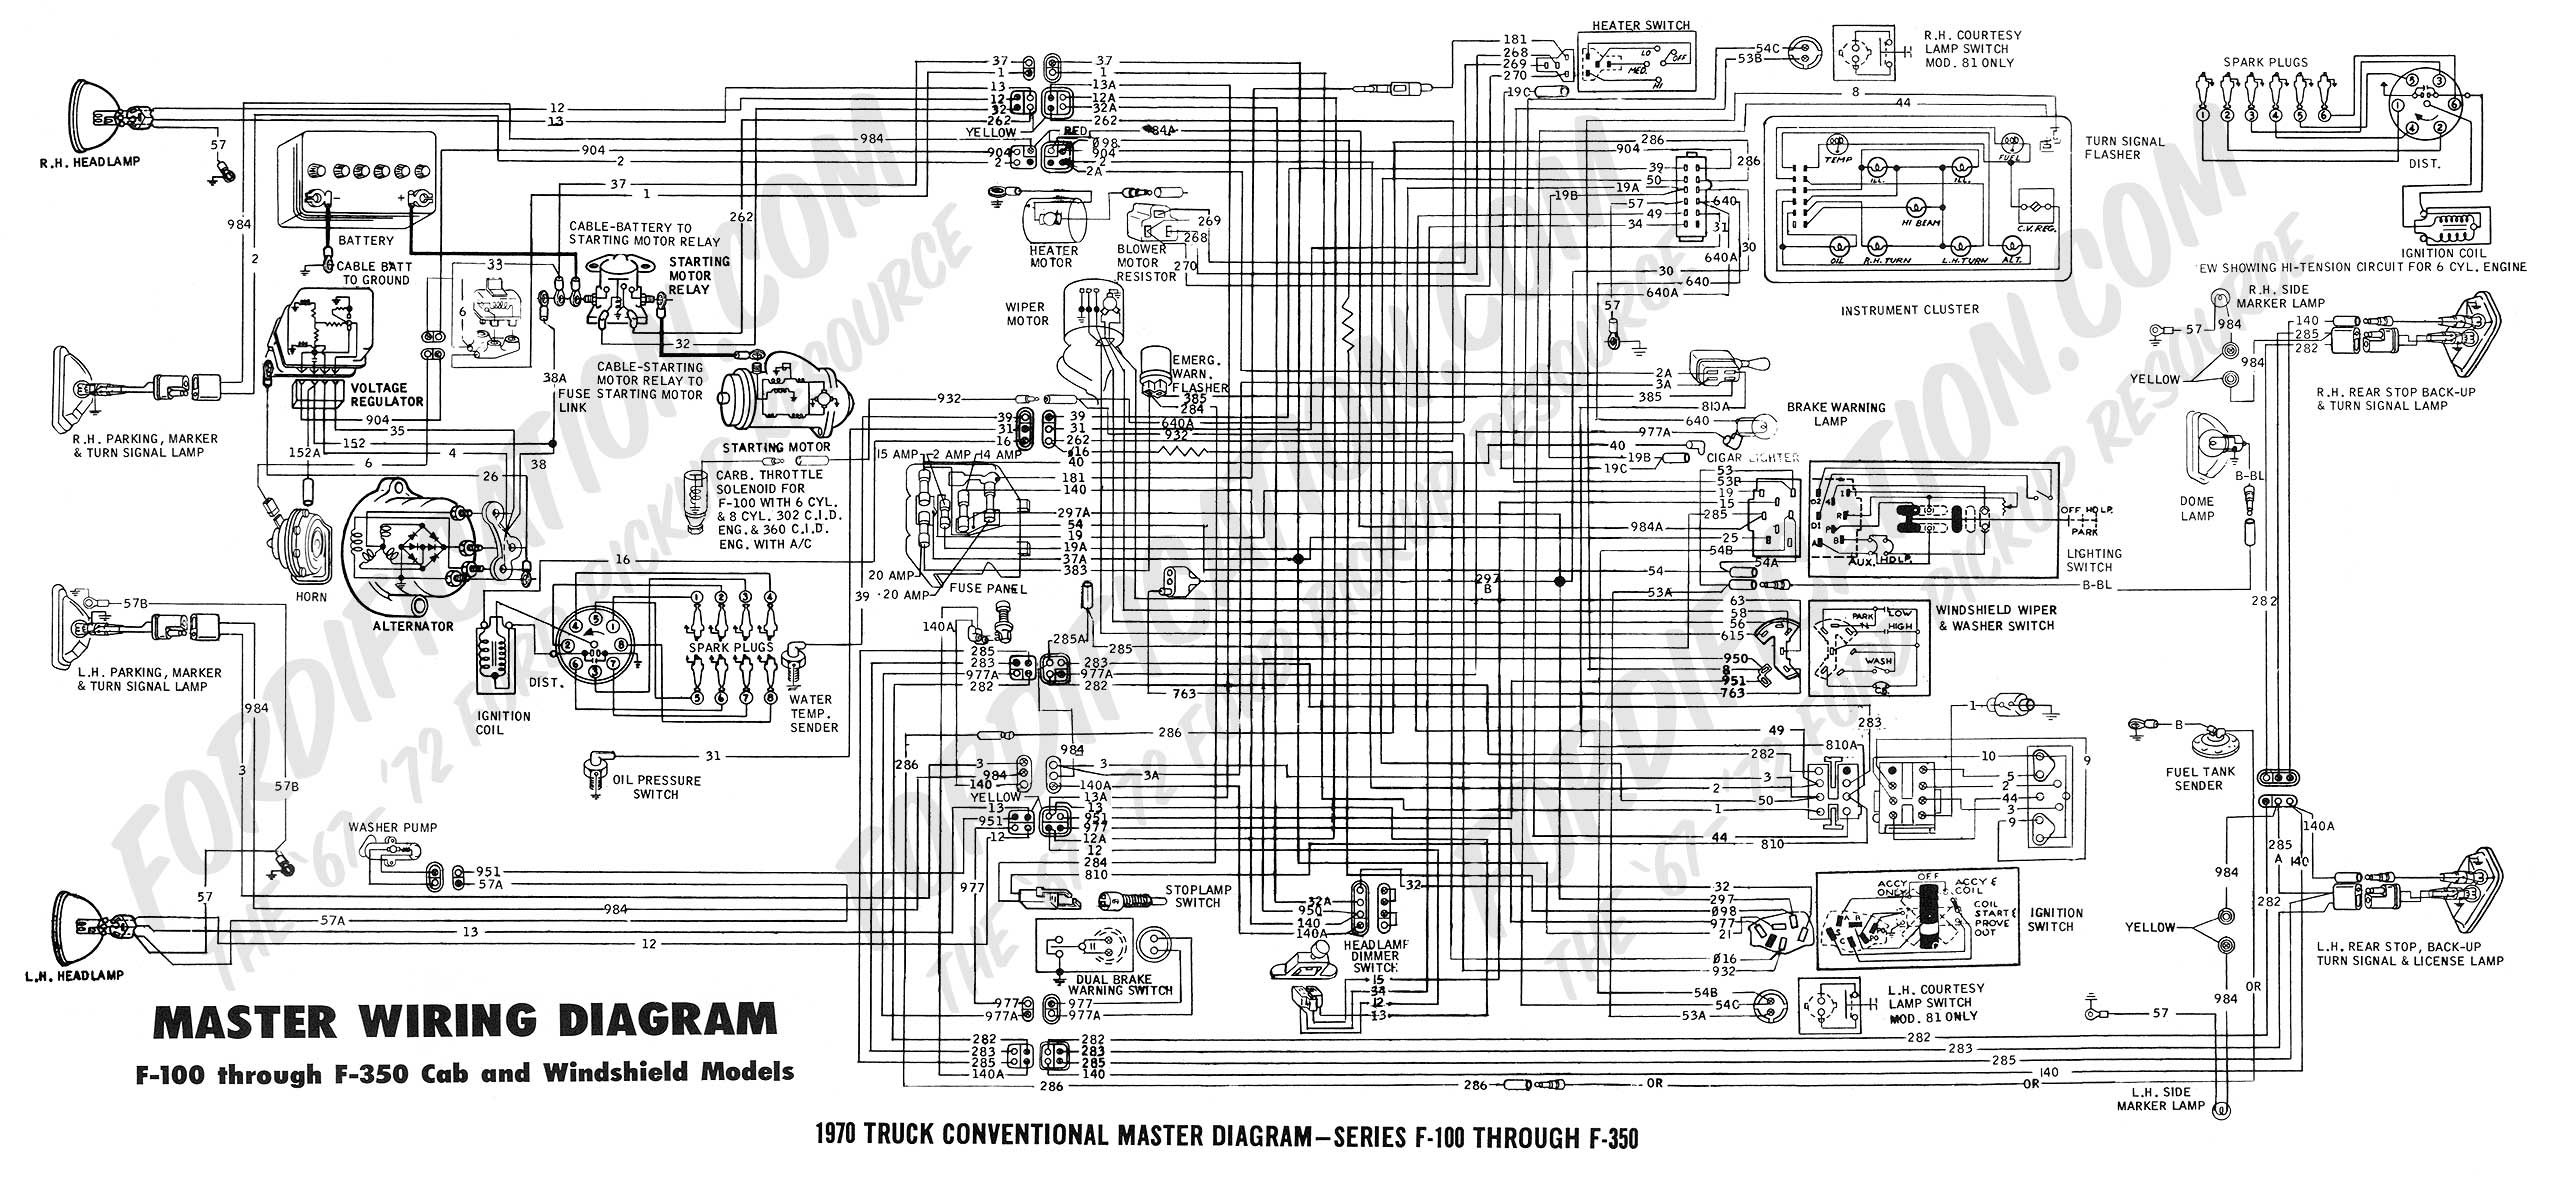 2003 Ford F 250 Wire Diagram Opinions About Wiring Diagram \u2022 94 Ford F  350 Wiring Diagrams Ford F 350 Wiring Diagram